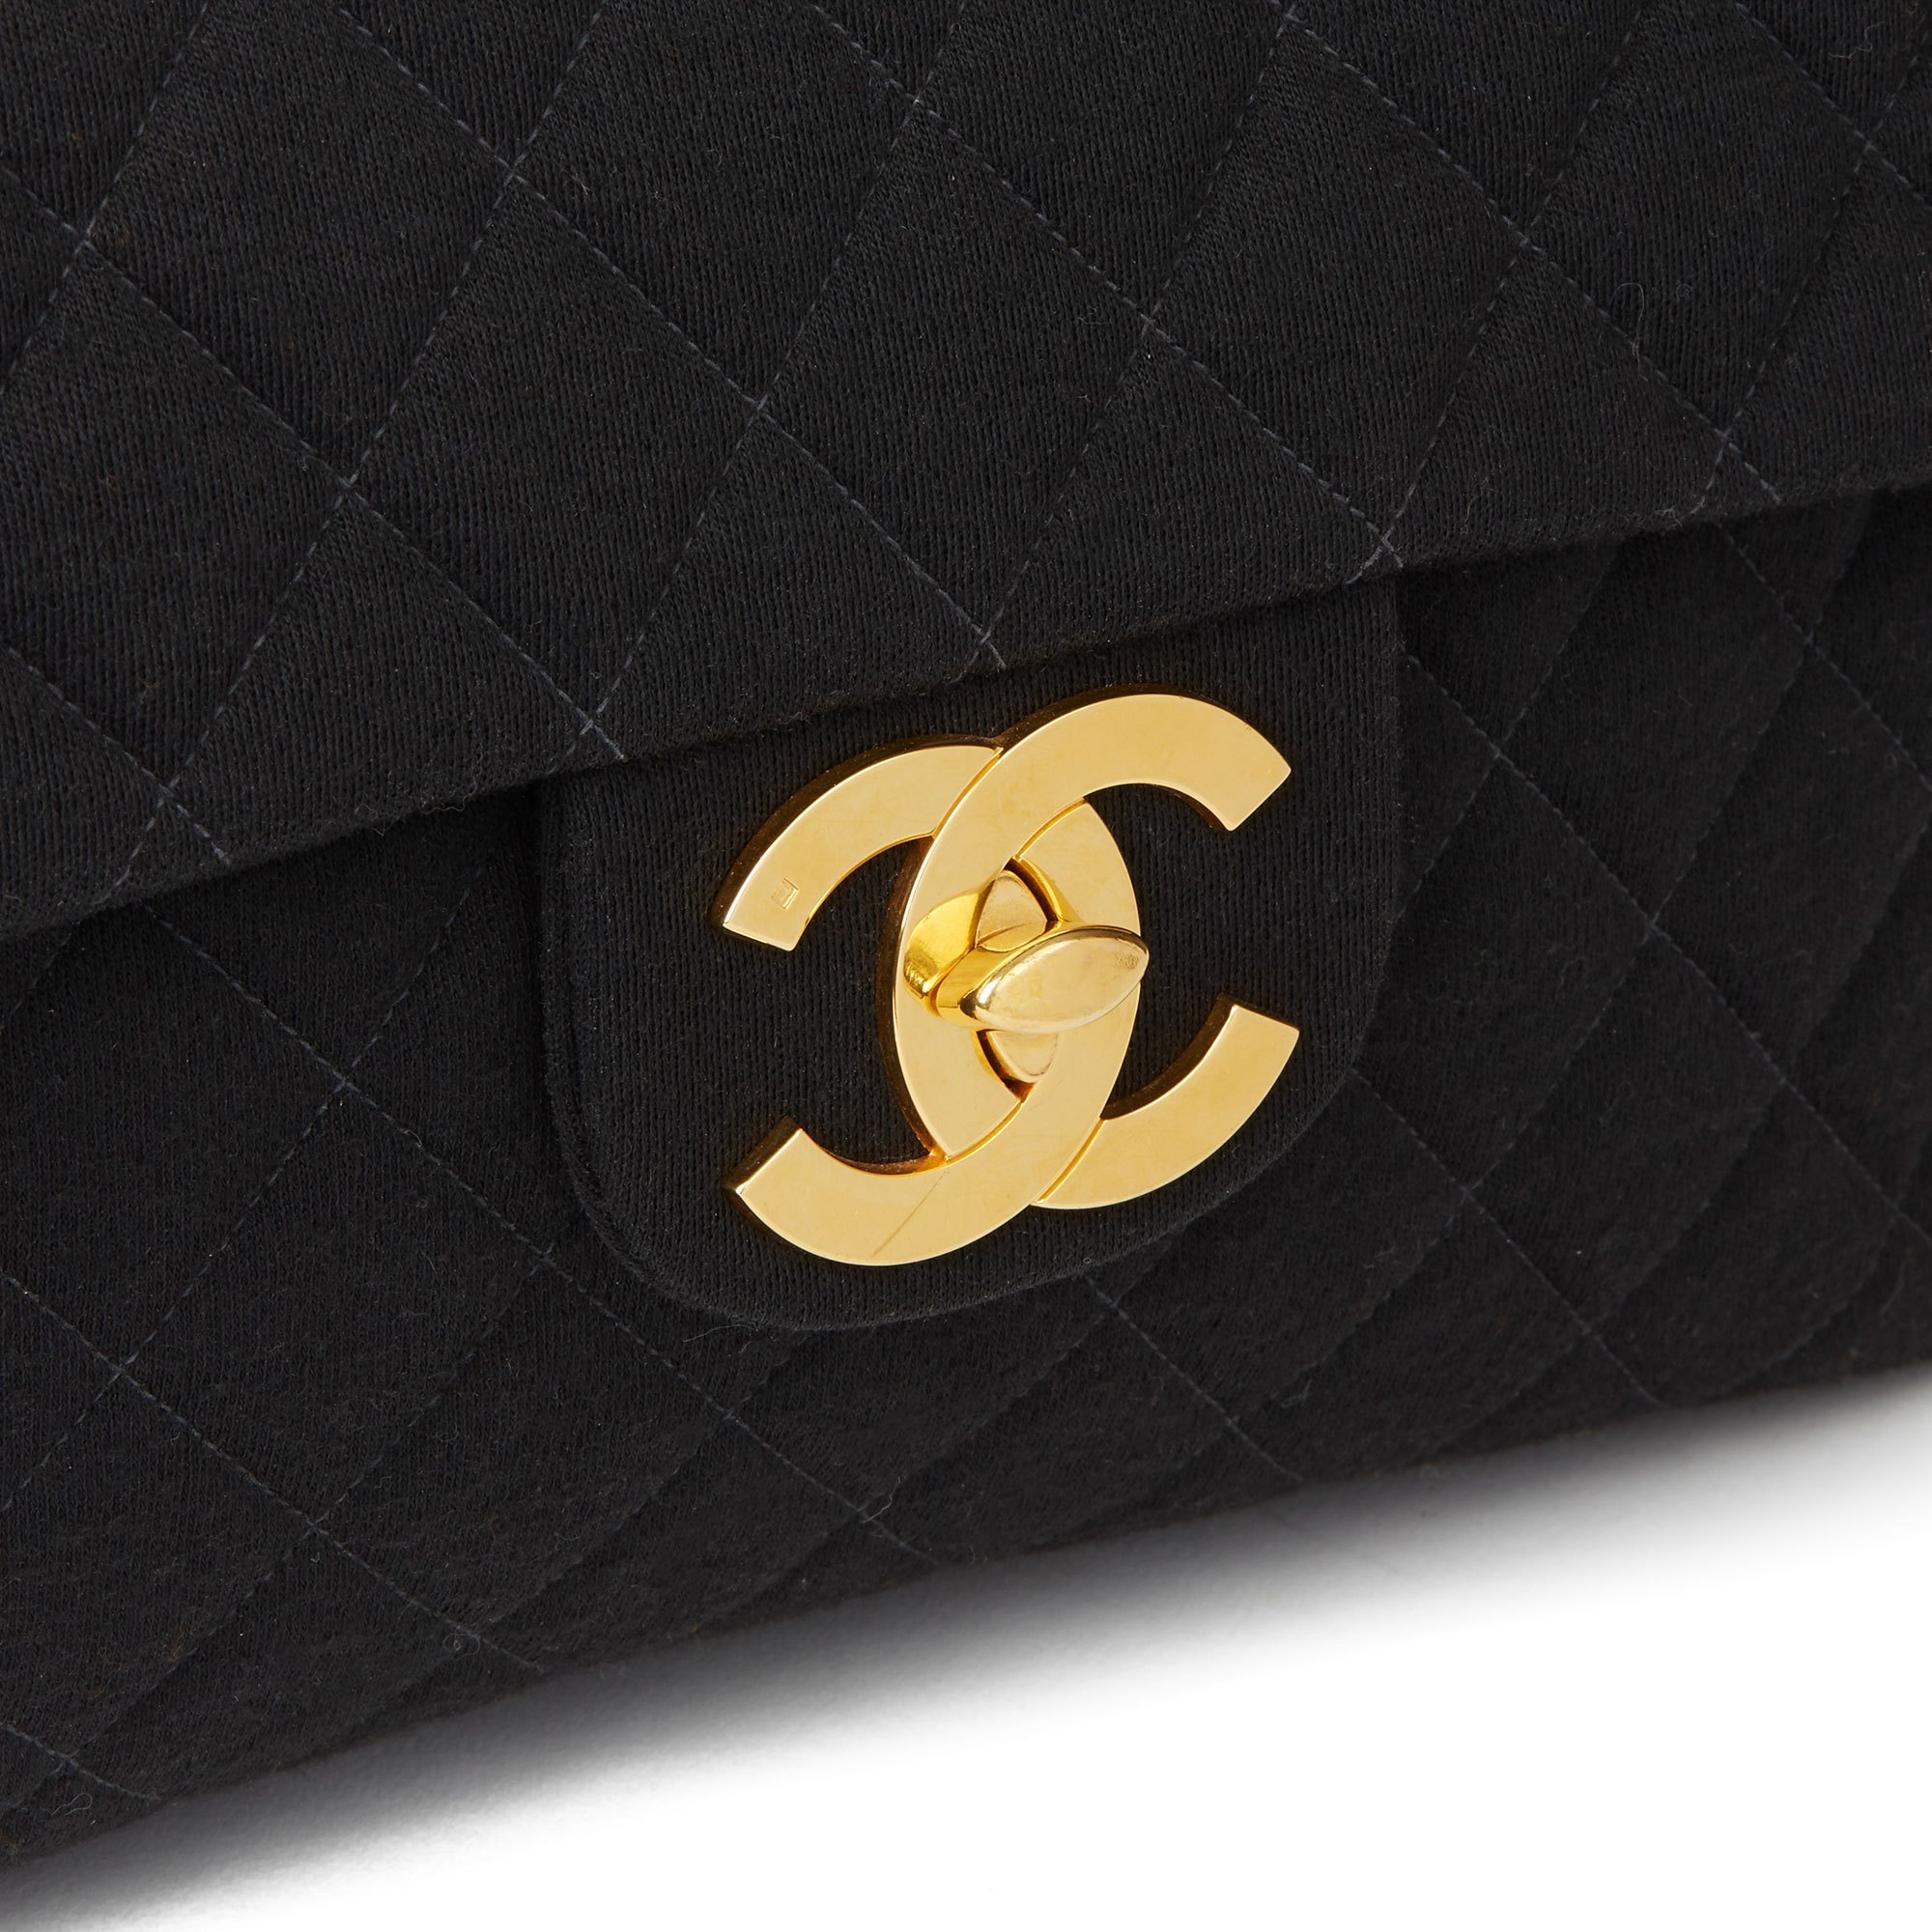 Chanel Black Quilted Jersey Fabric Vintage Jumbo XL Backpack